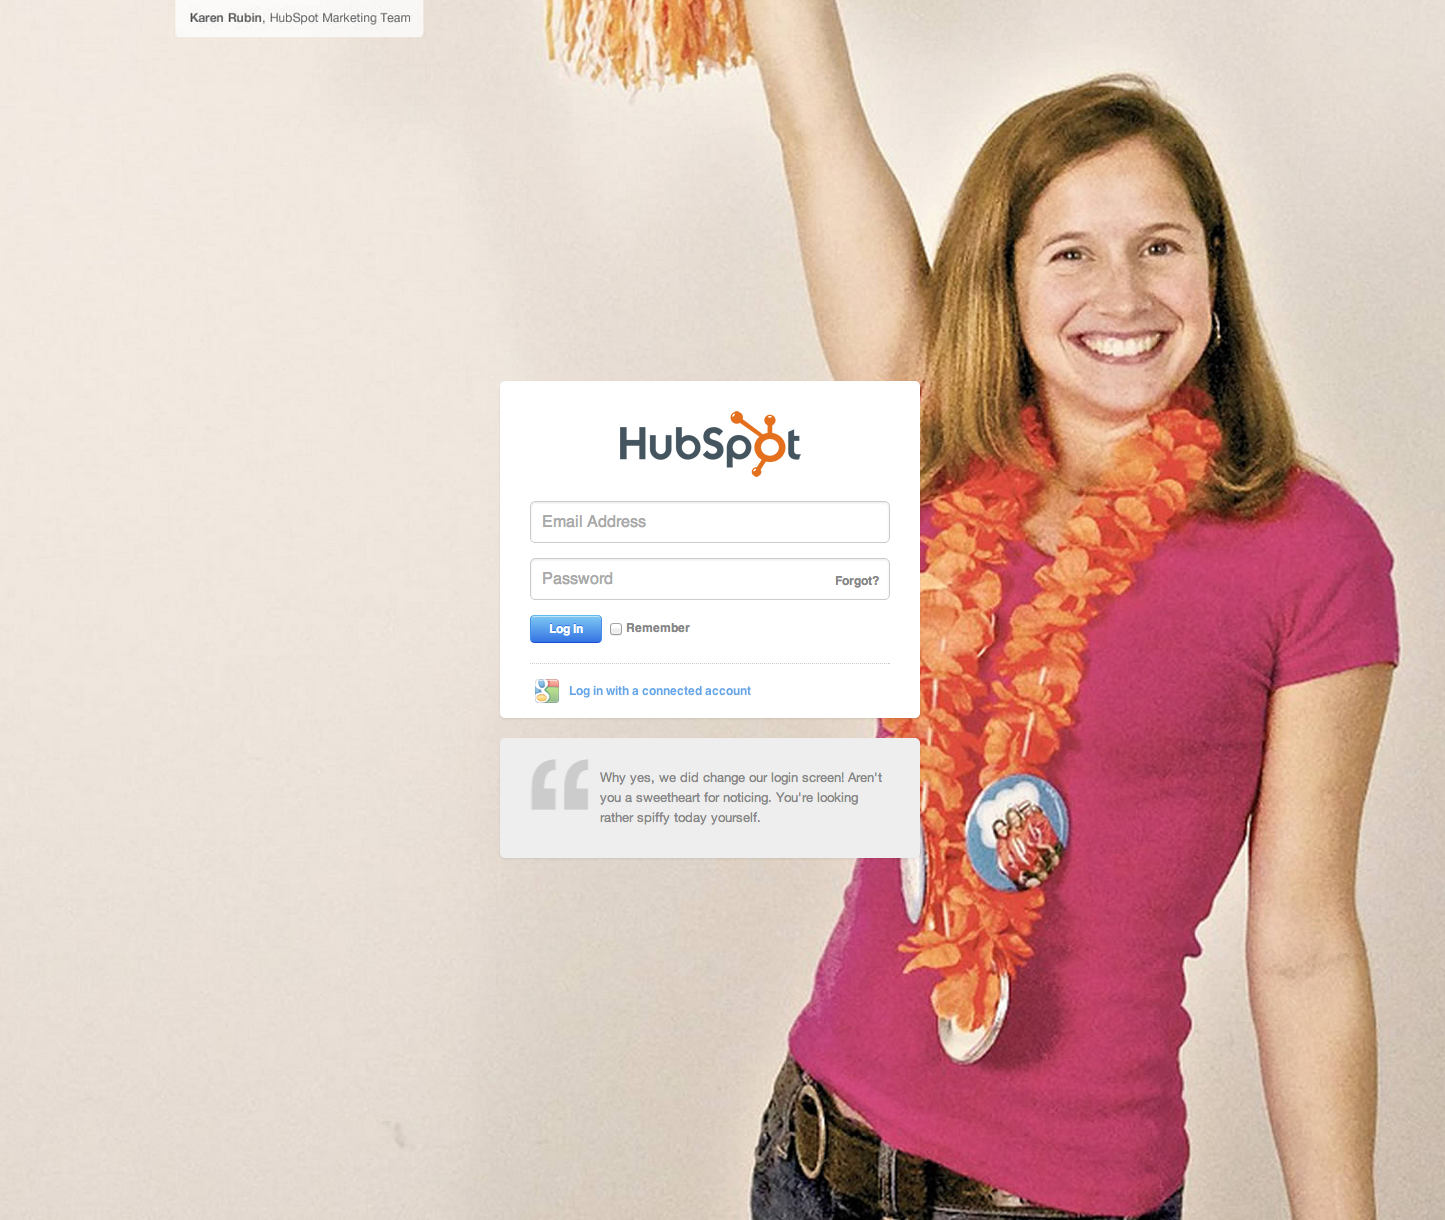 Cool login pages by HubSpot